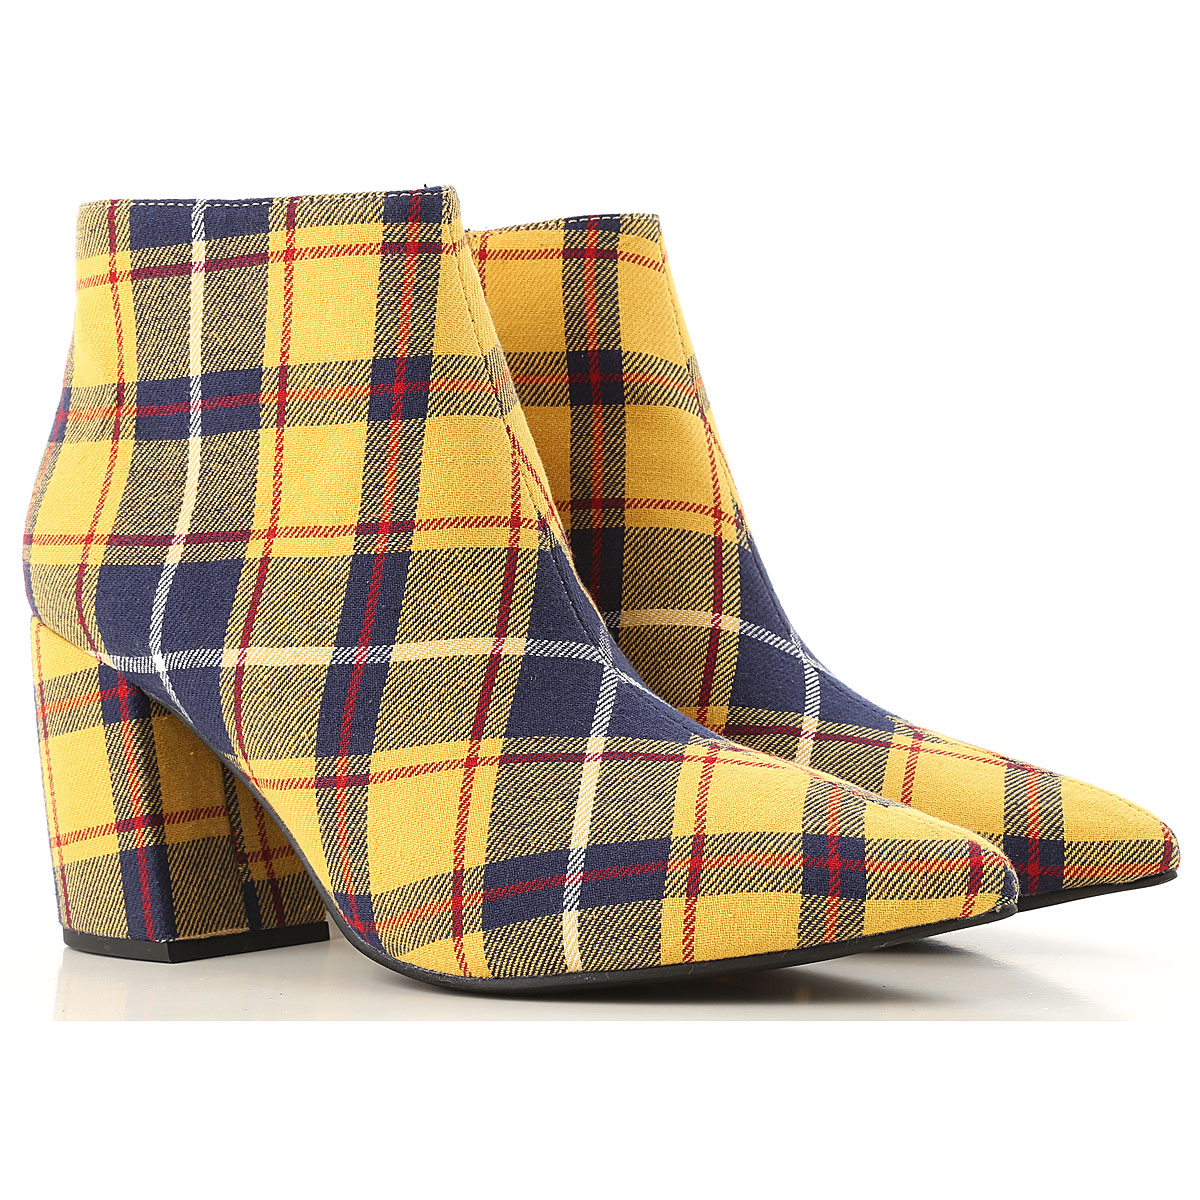 Image of Jeffrey Campbell Boots for Women, Booties, Yellow, Fabric, 2017, 10 11 7